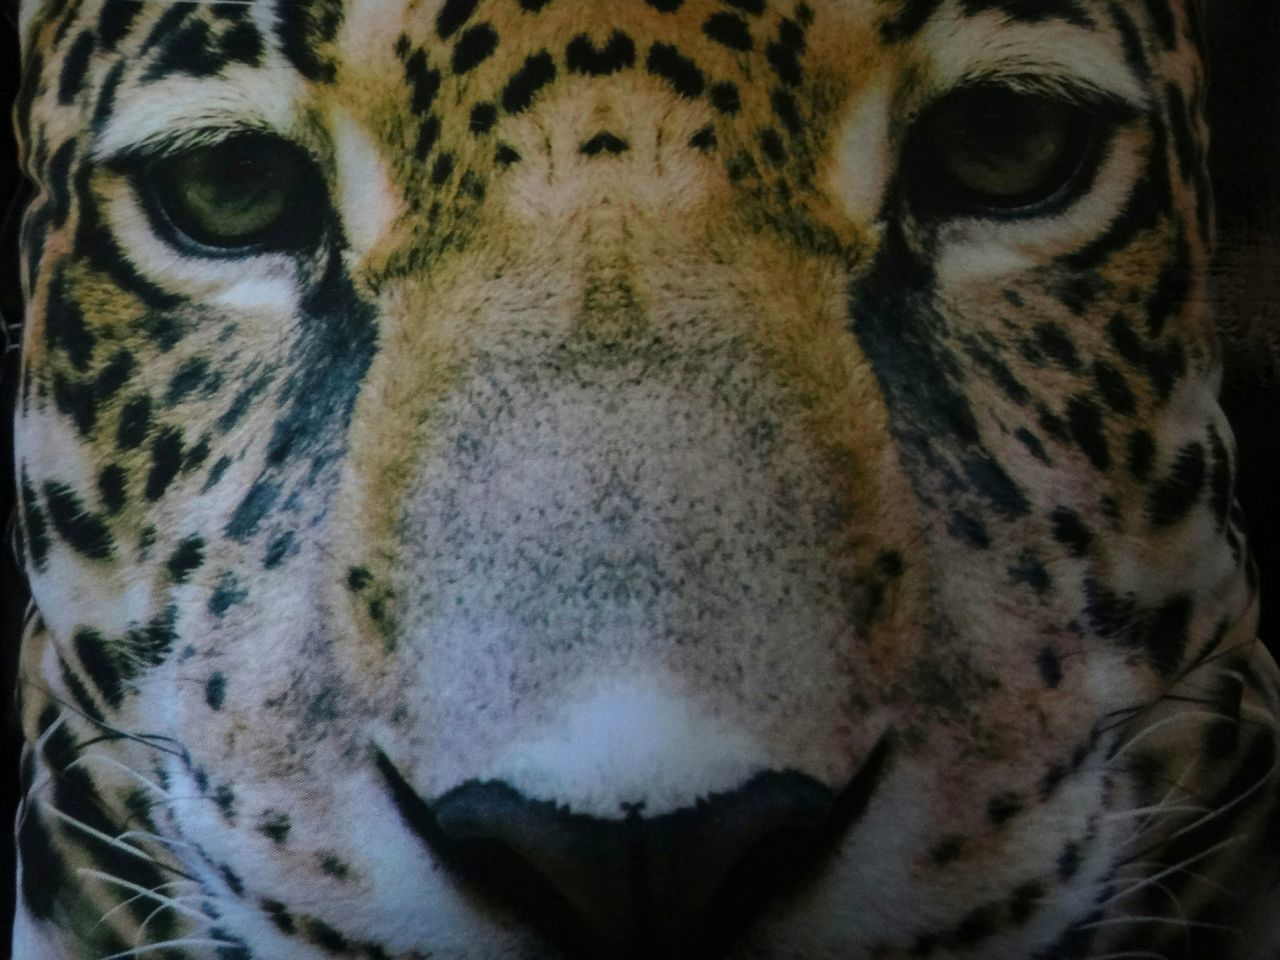 animal themes, one animal, animal, mammal, feline, big cat, cat, animal wildlife, close-up, animals in the wild, portrait, animal body part, looking at camera, animal head, no people, vertebrate, front view, carnivora, tiger, whisker, animal eye, aggression, undomesticated cat, snout